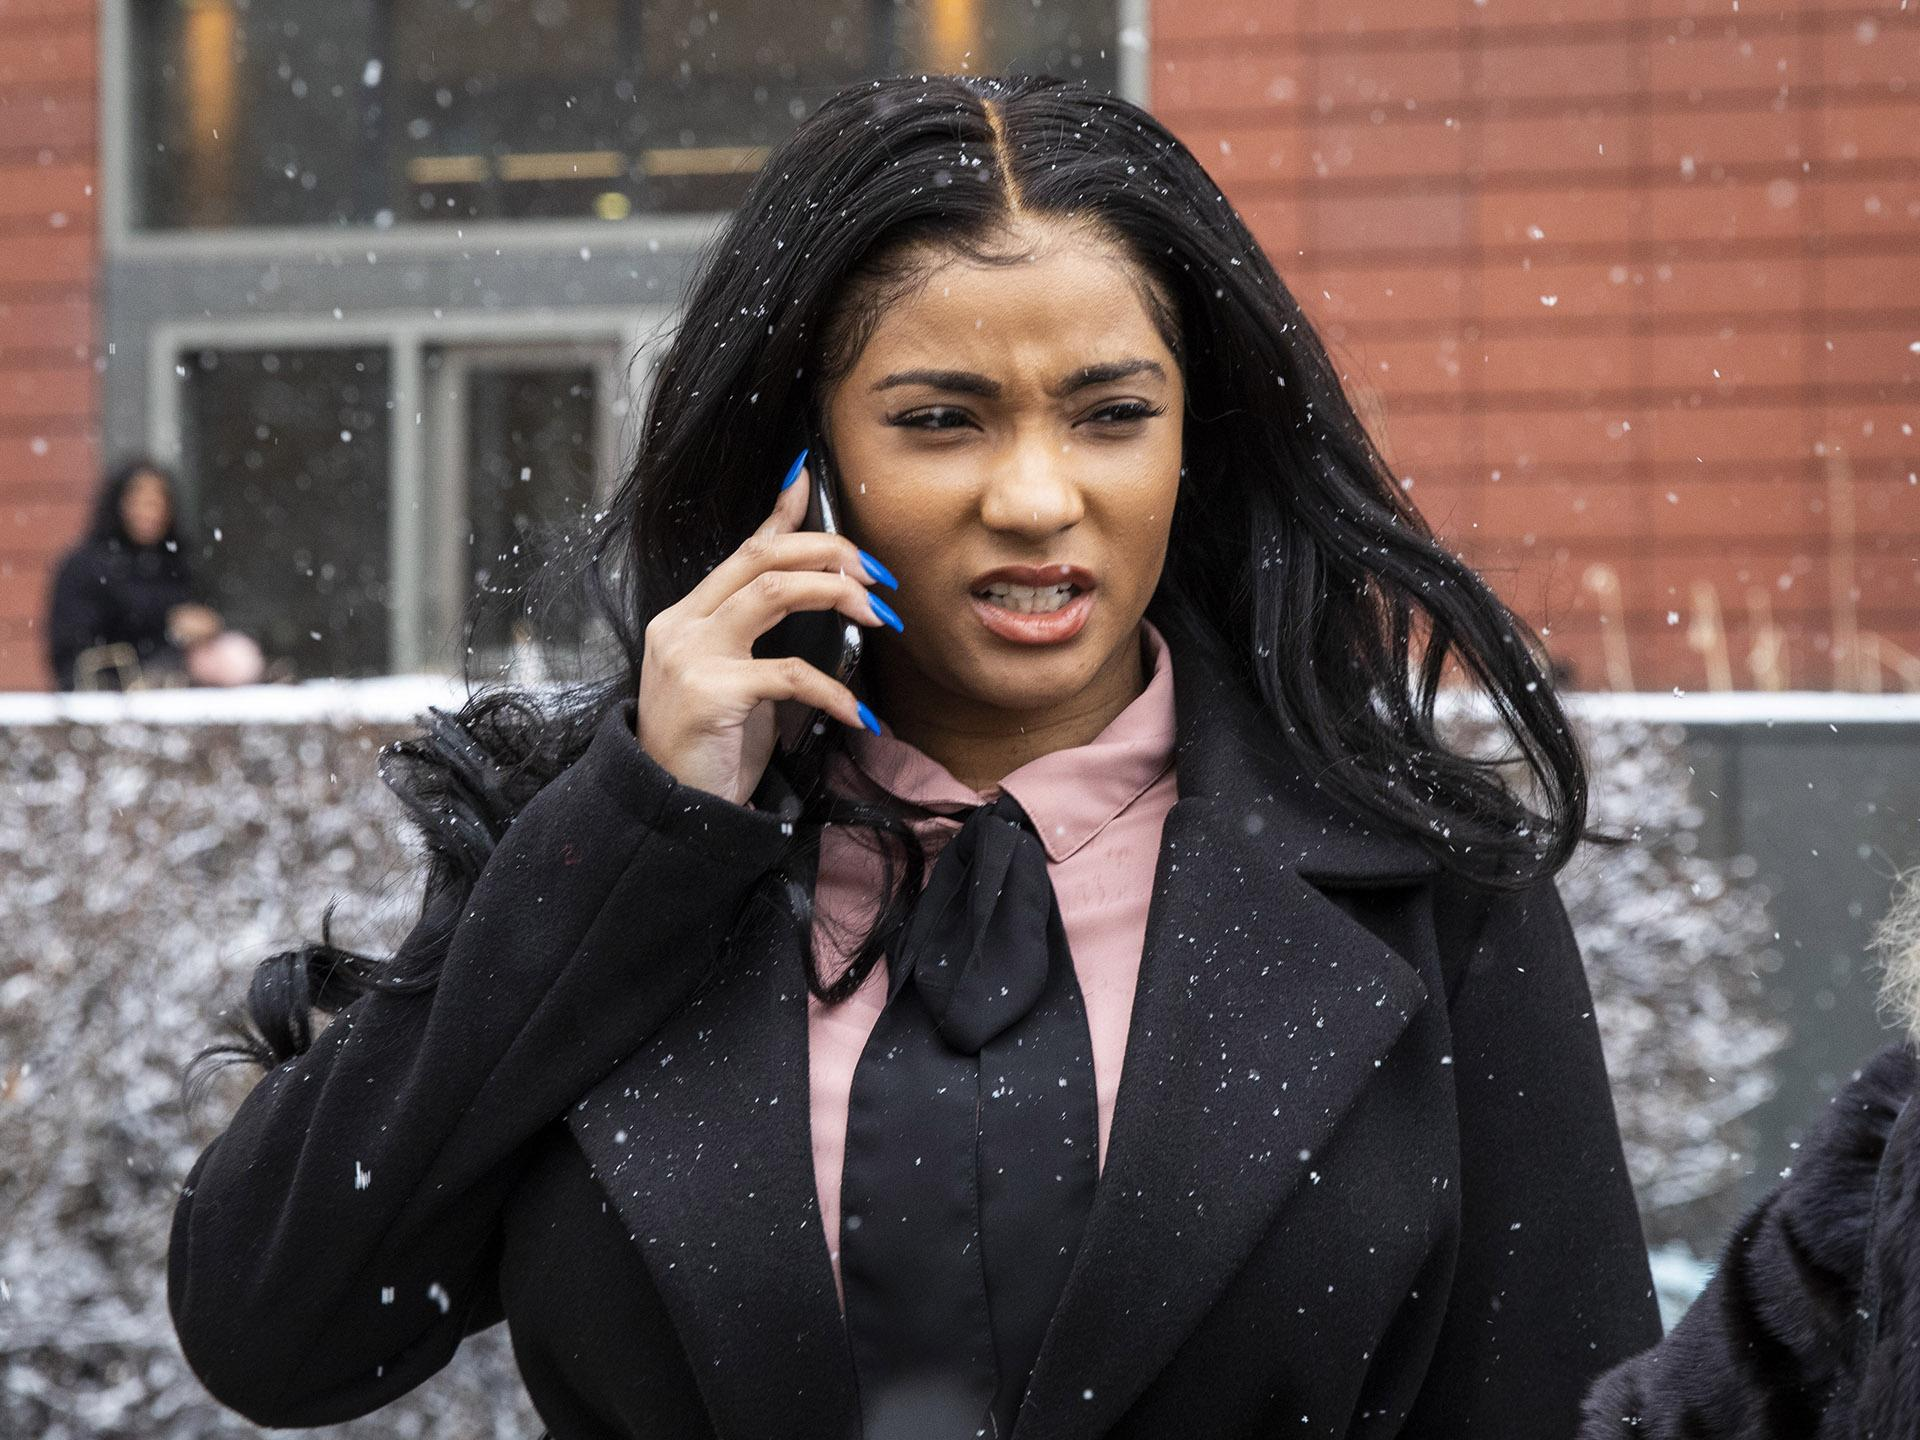 Joycelyn Savage, one of R&B singer R. Kelly's girlfriends, walks out of the Cook County Domestic Violence Courthouse, Thursday morning, Jan. 23, 2020, in Chicago. (Ashlee Rezin Garcia / Chicago Sun-Times via AP)